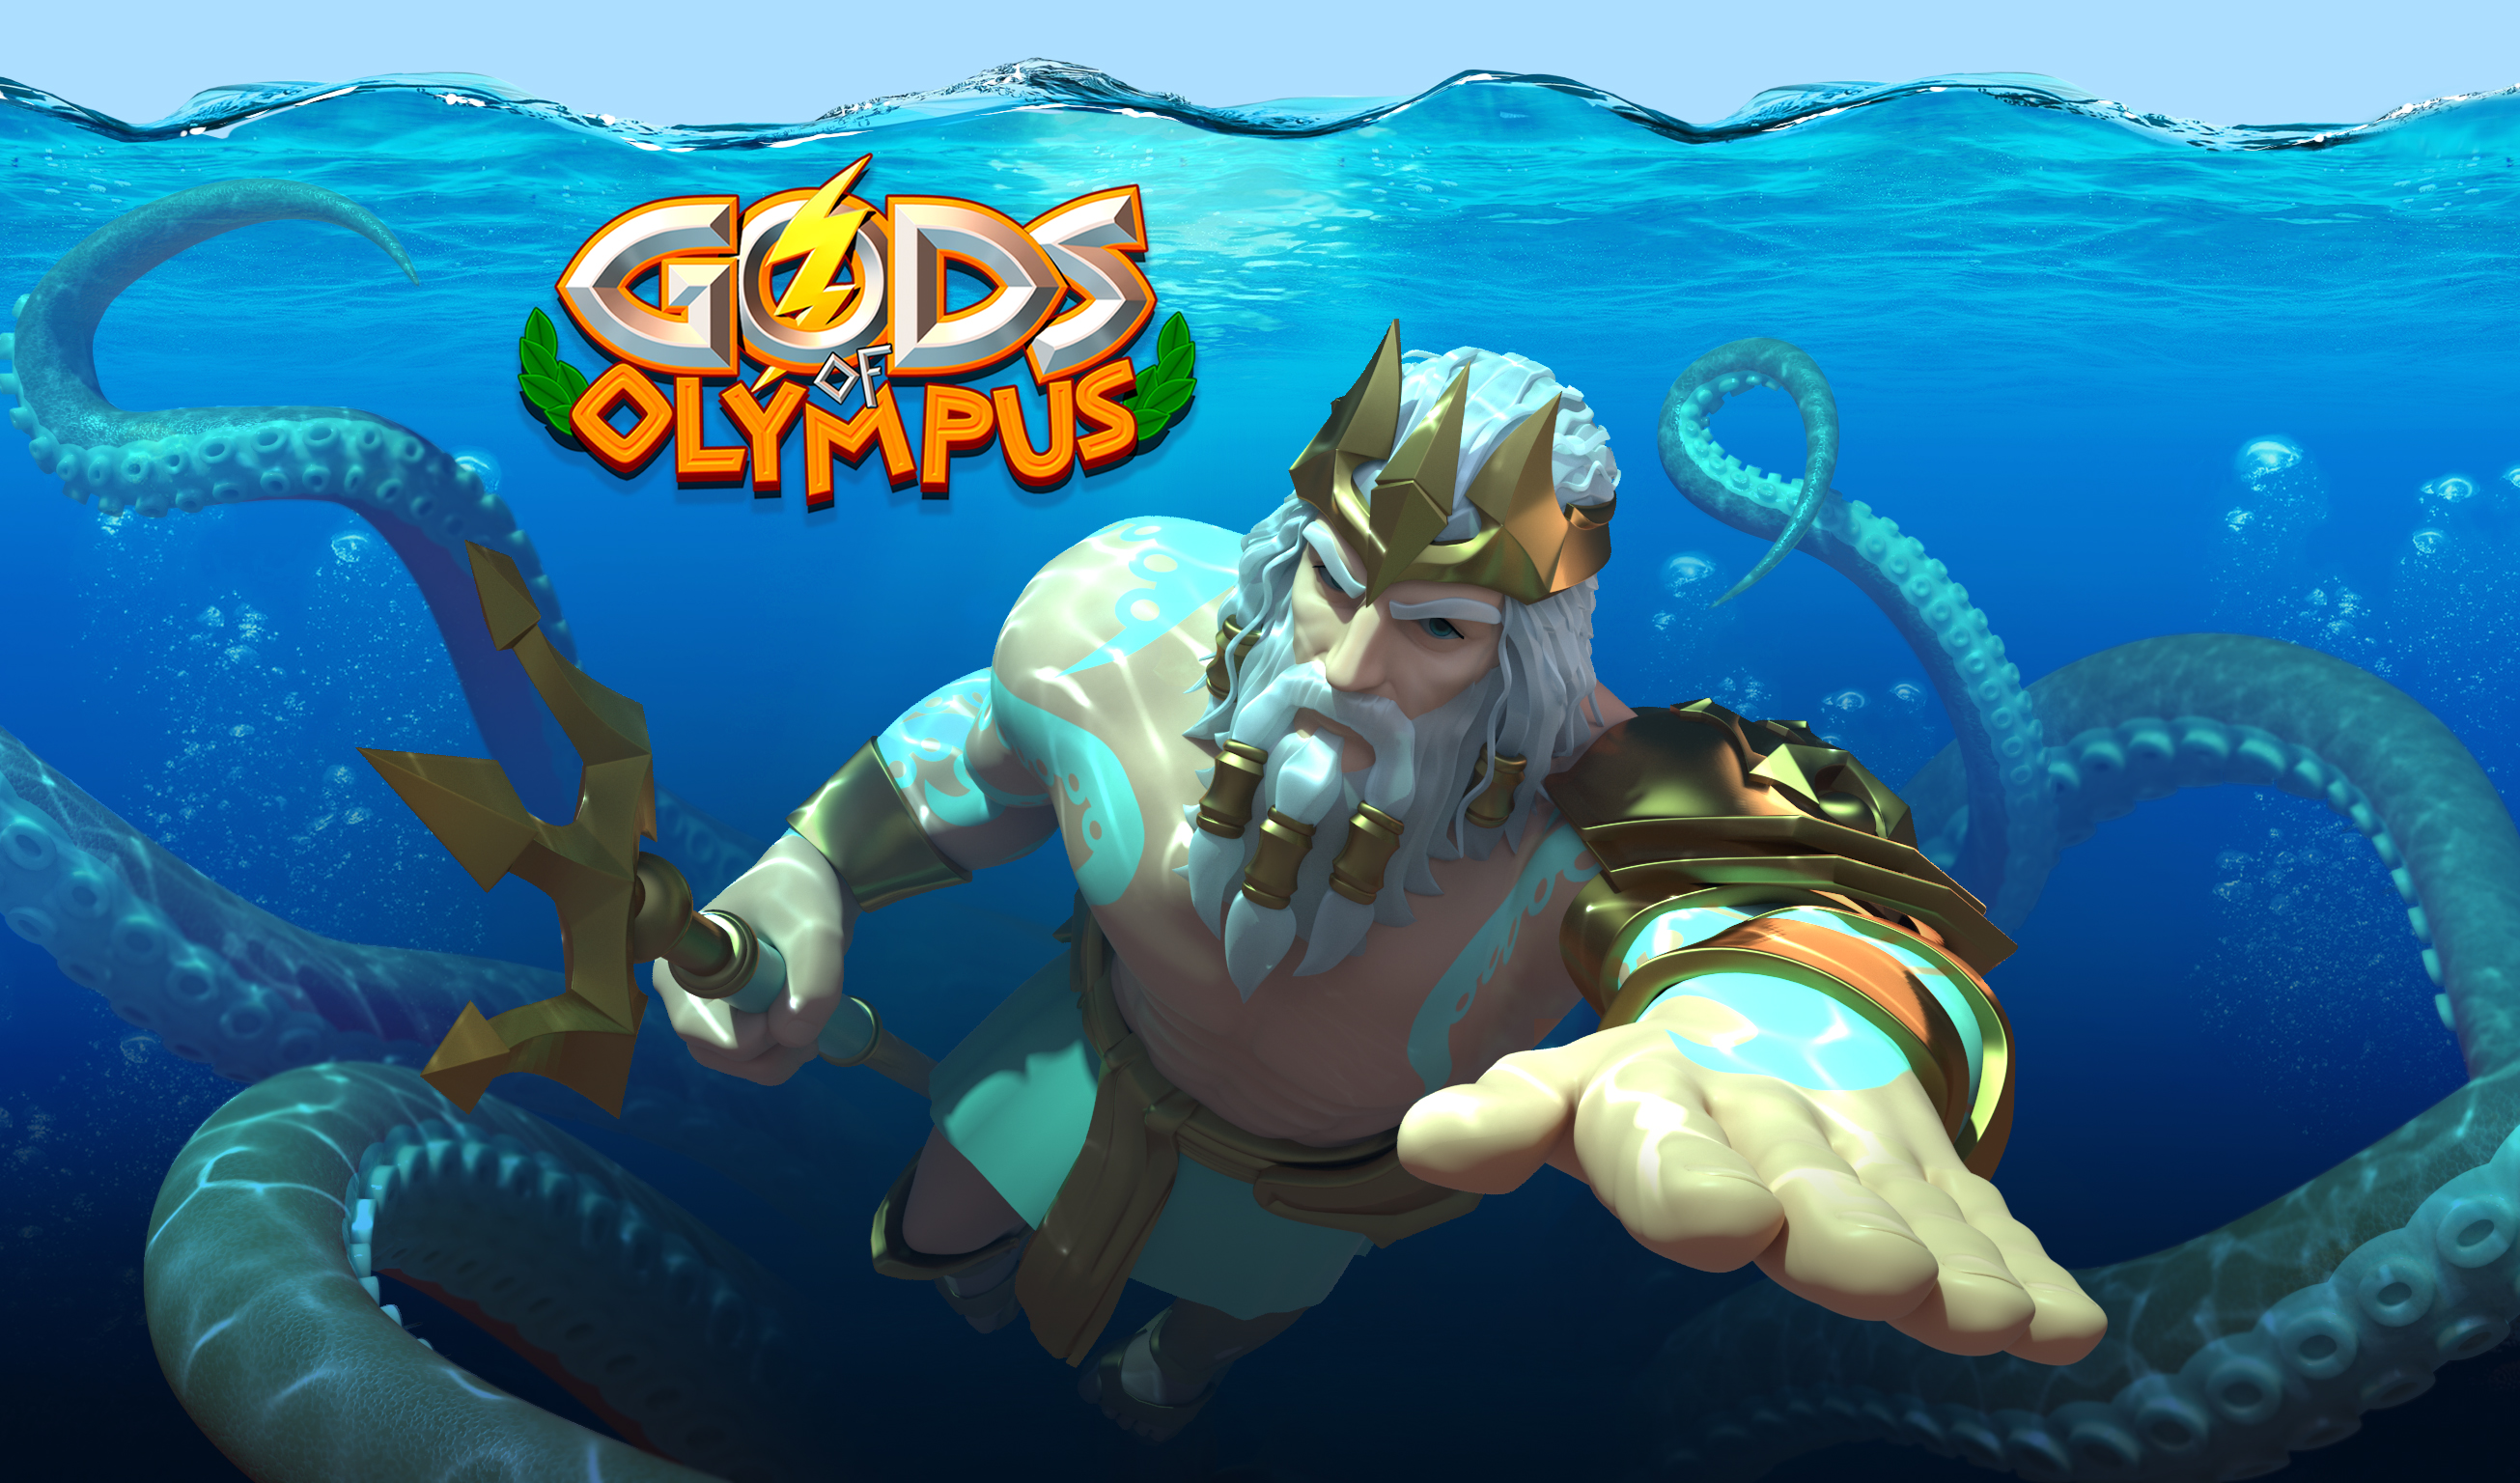 Meet Poseidon, the biggest addition in the Gods of Olympus October update